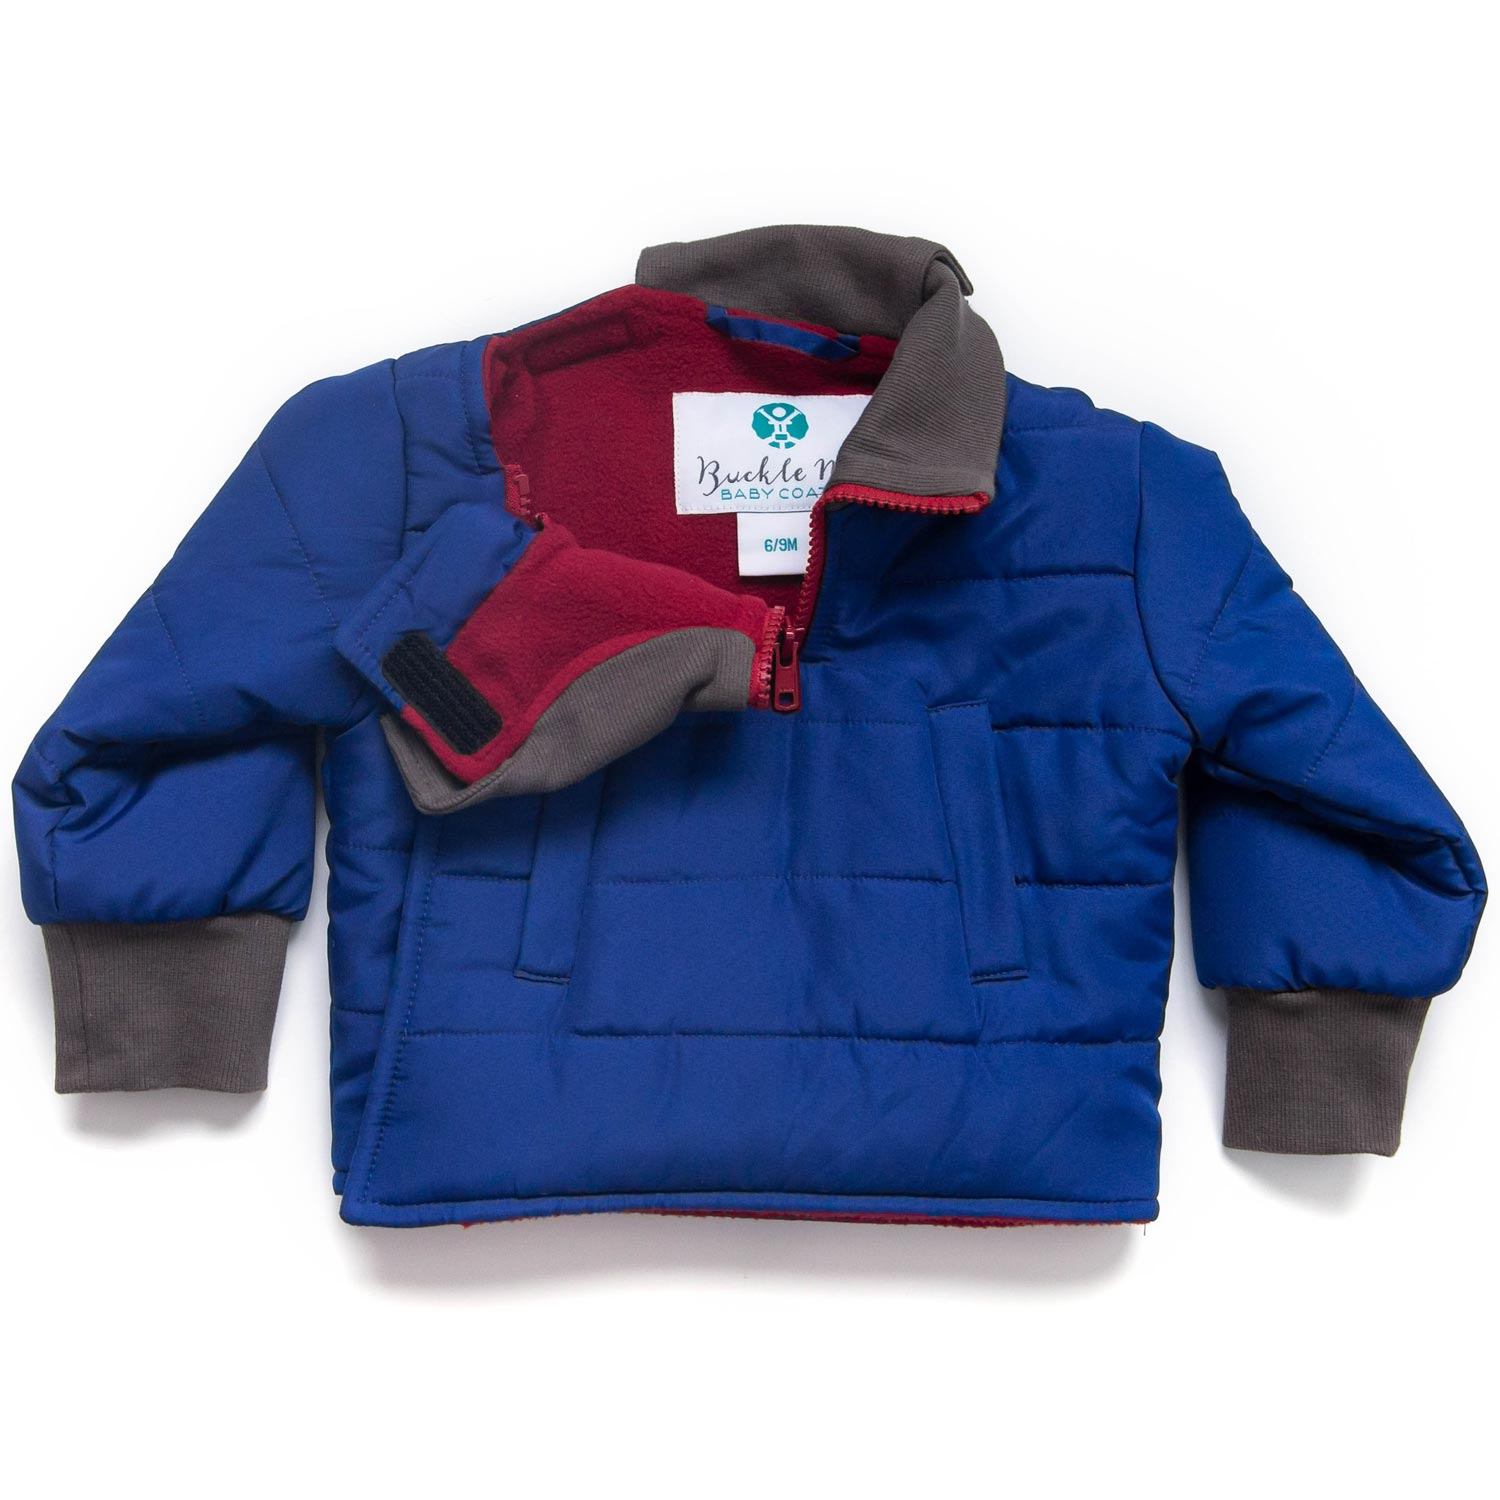 Toastier Car Seat Coats by Buckle Me Baby Coats - 5 Cosmic Chill